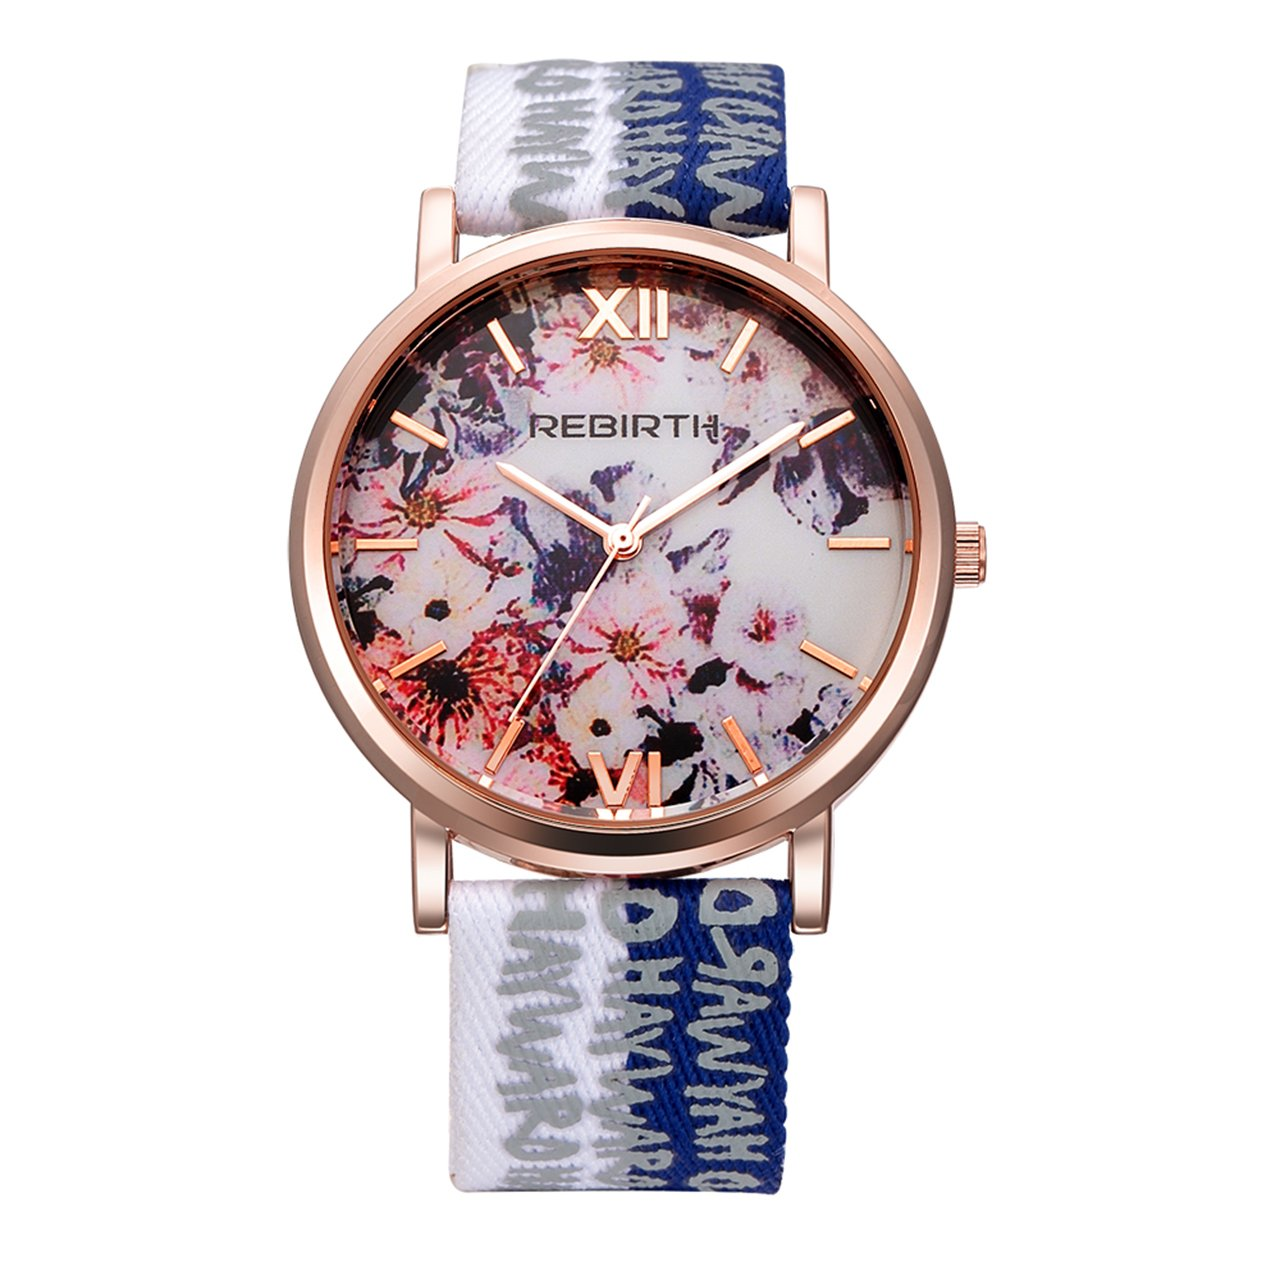 Top Plaza Womens Flower Dial Rose Gold Case Letter Print Canvas + PU Leather Strap Roman Numeral Waterproof Analog Quartz Watch(Blue and White)